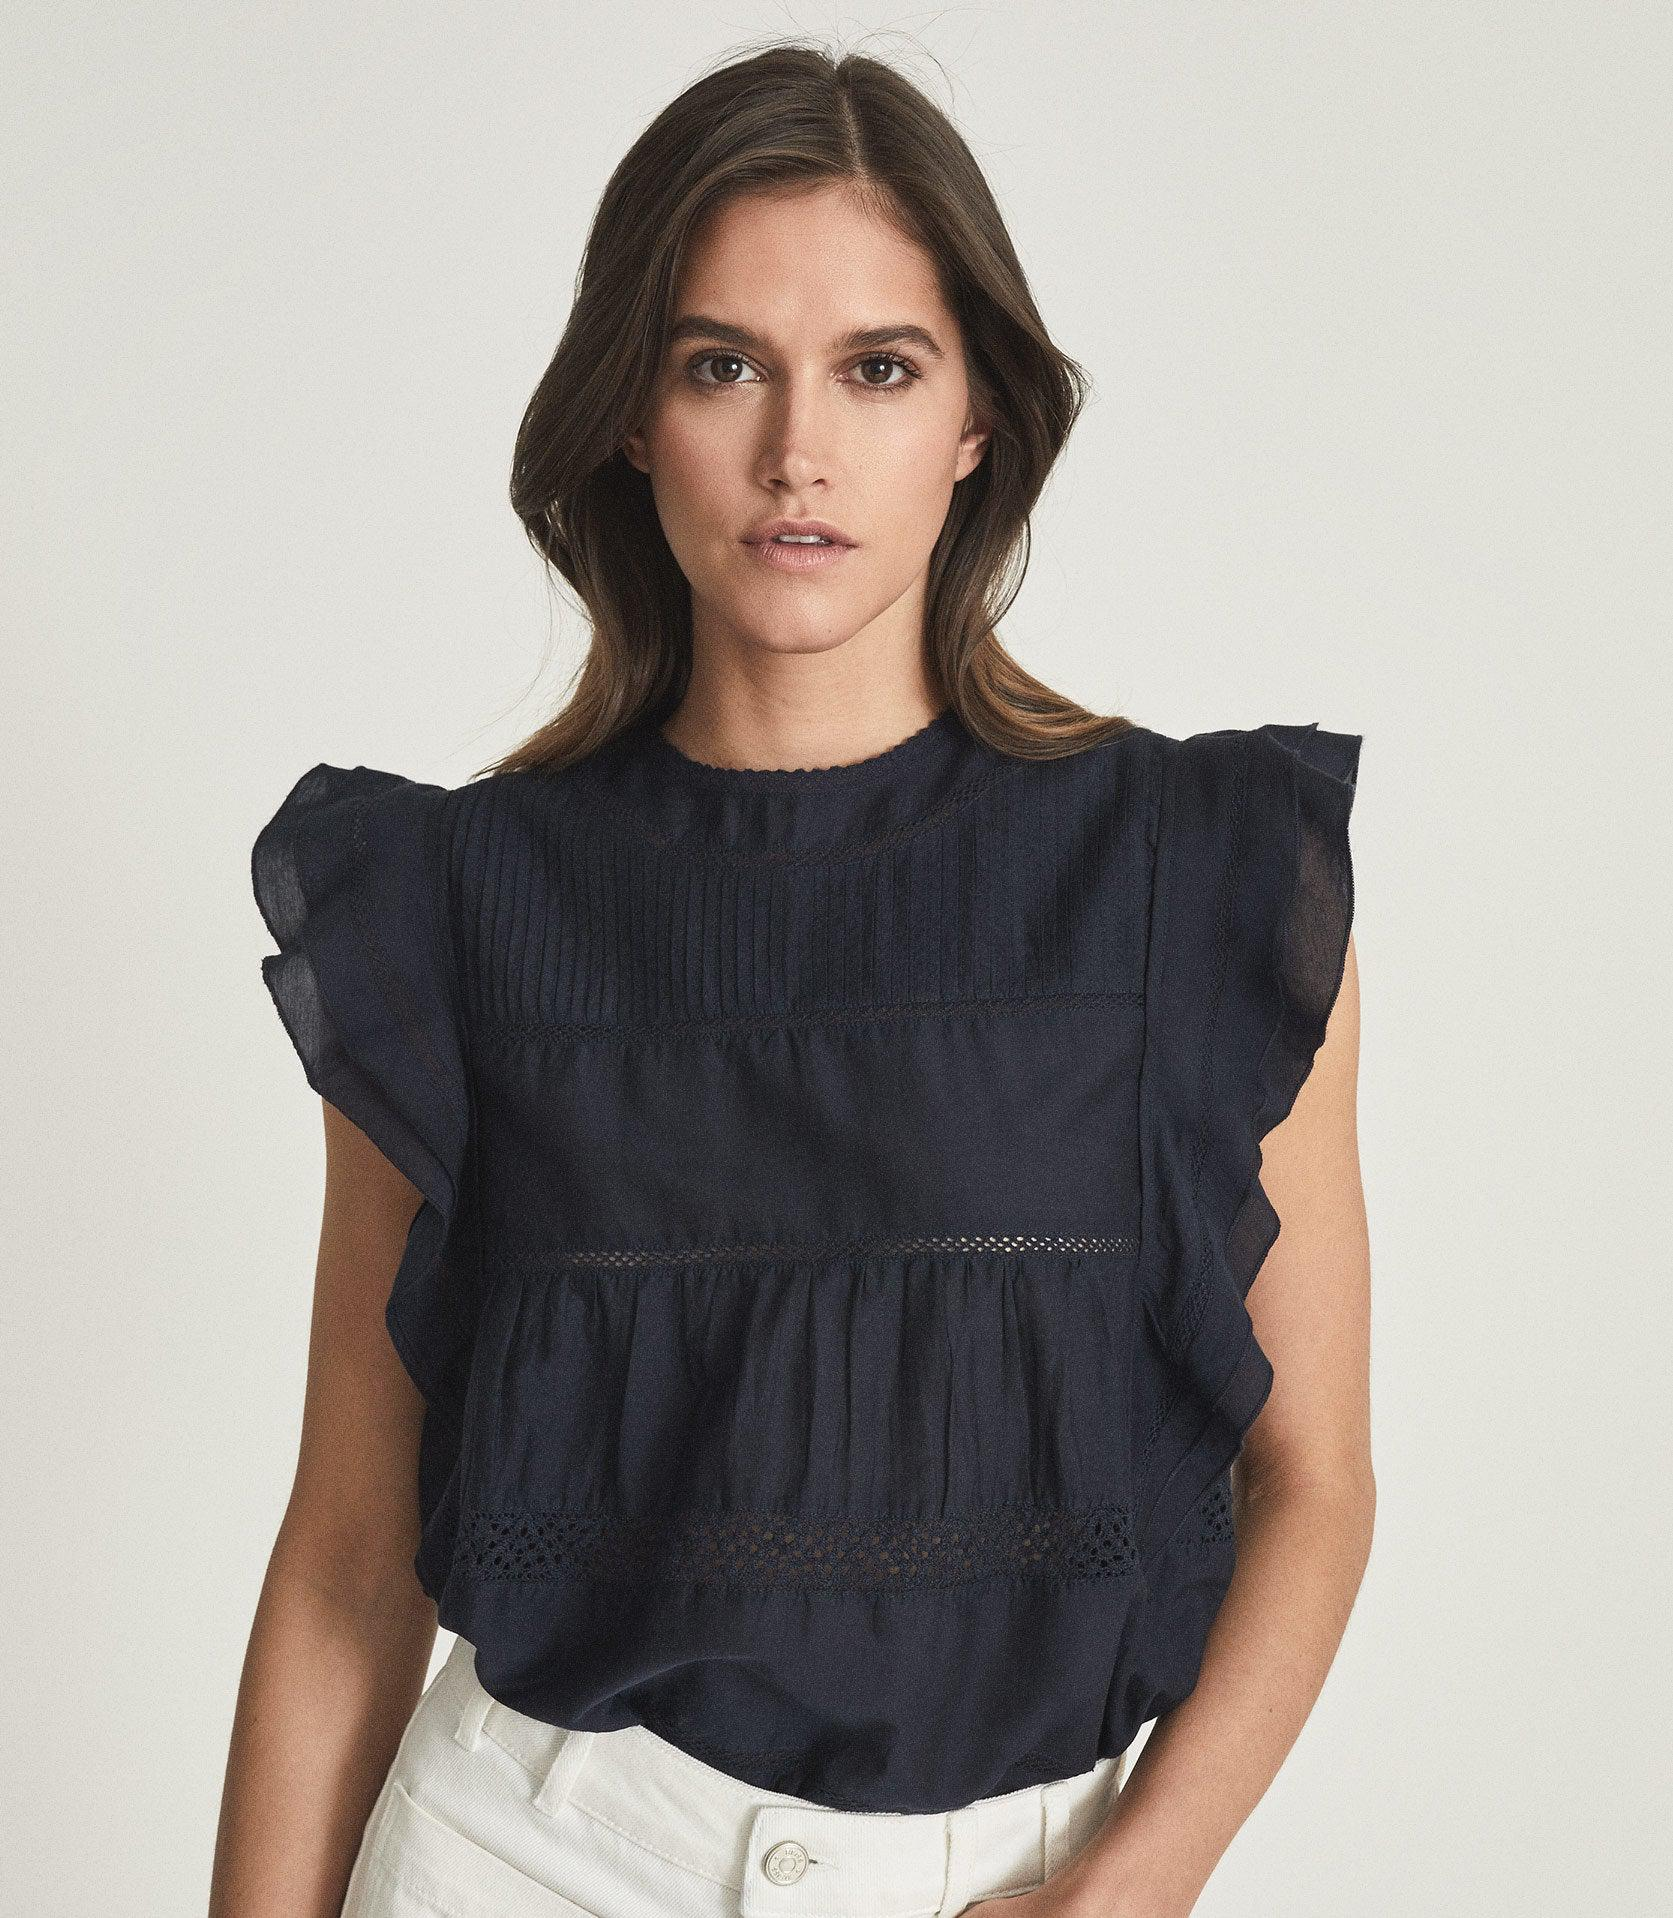 SIMONE - LACE DETAILED CAP SLEEVE TOP 1